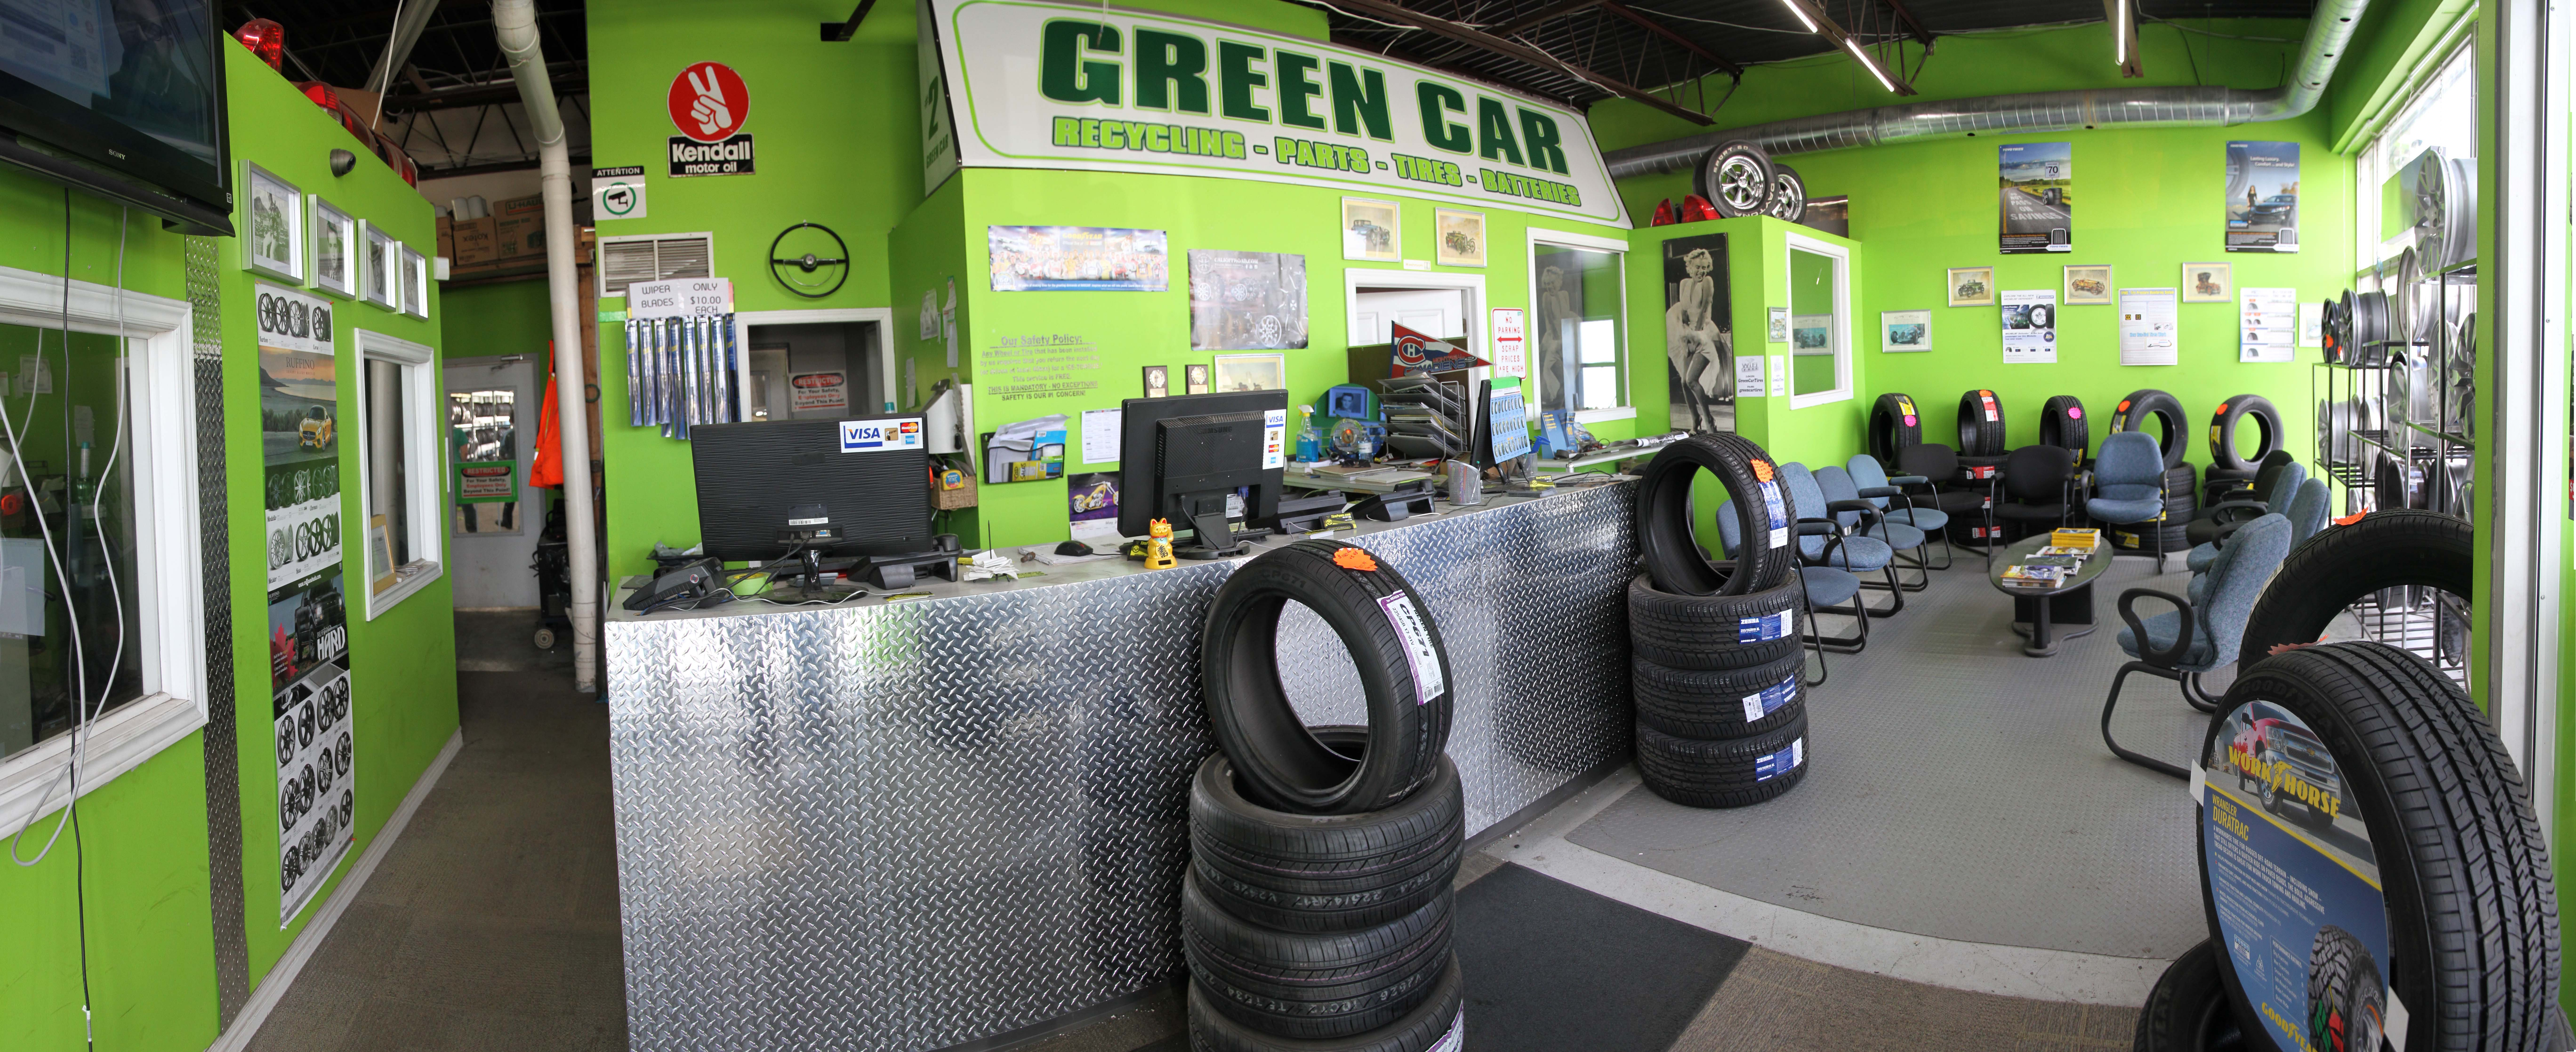 green car tires + tire pawn